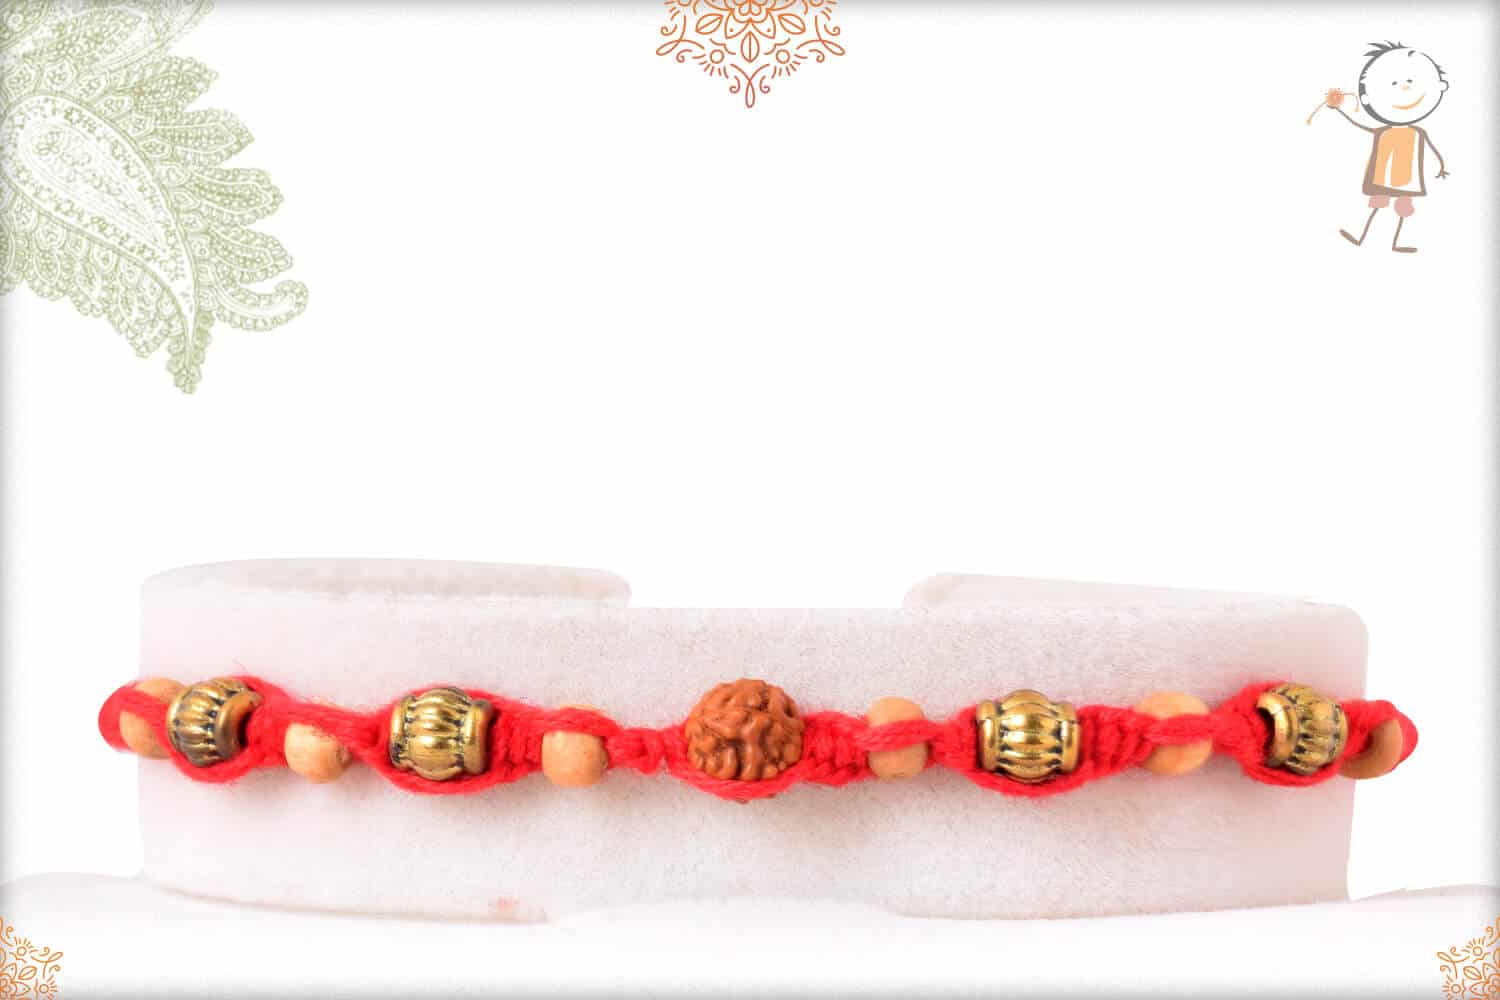 Uniquely Crafted Rudraksh with Golden and Sandalwood Beads 1